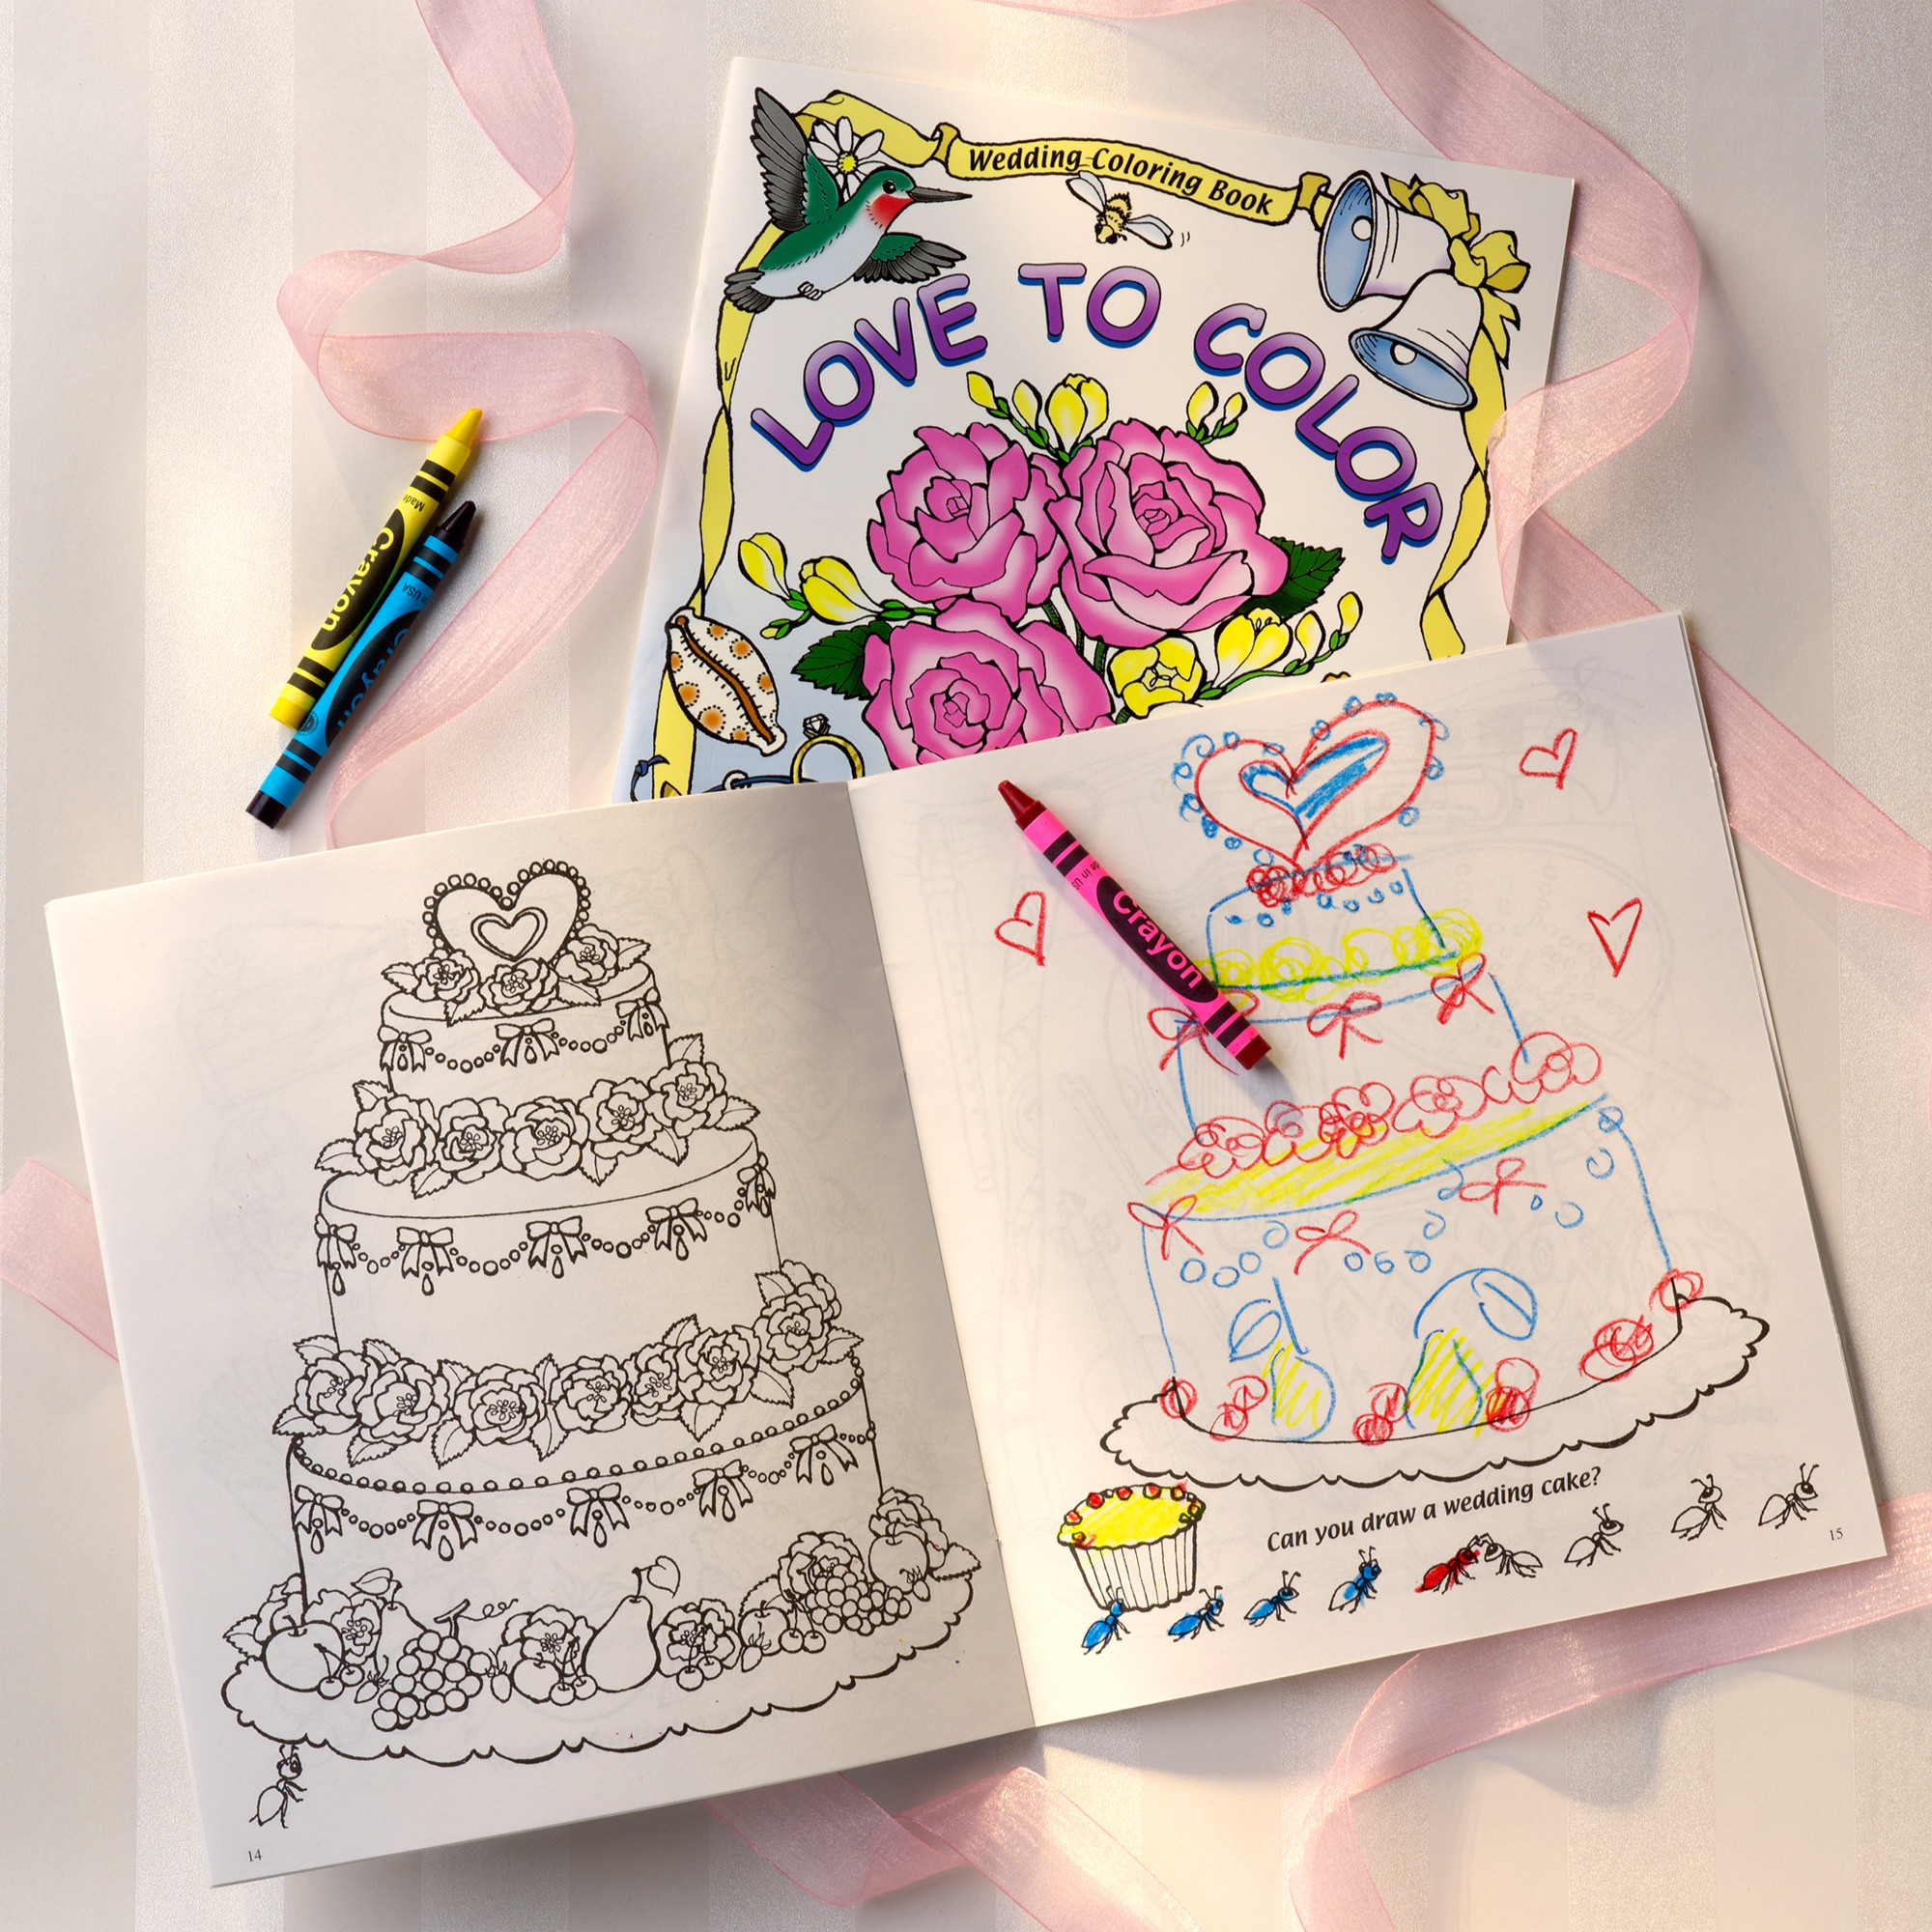 wedding coloring book for your flower girl and ring bearer - Flower Girl Coloring Book